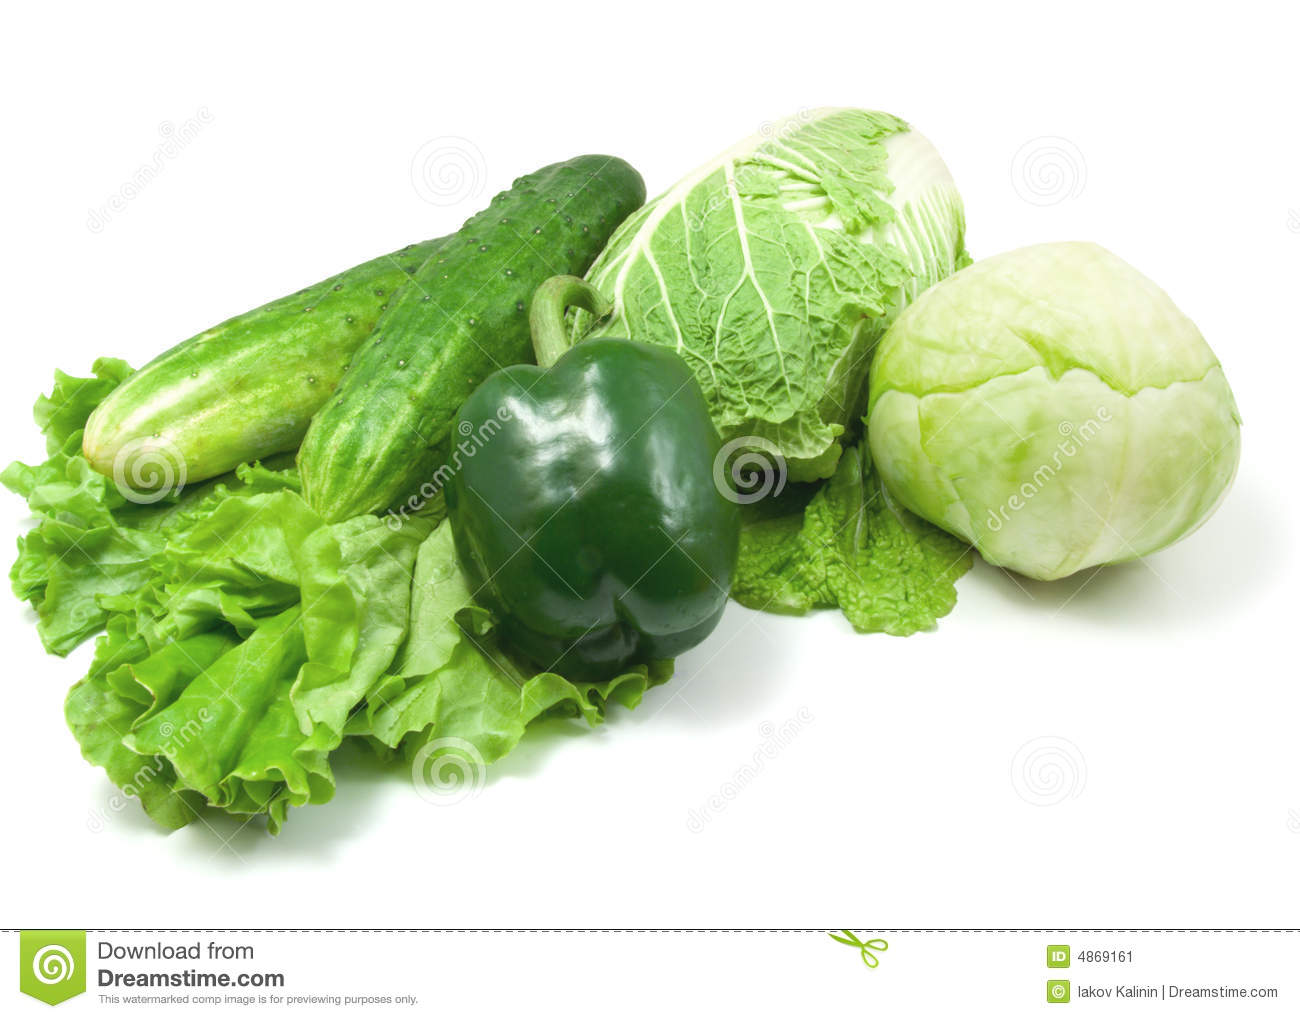 Green vegetables isolated on white background.